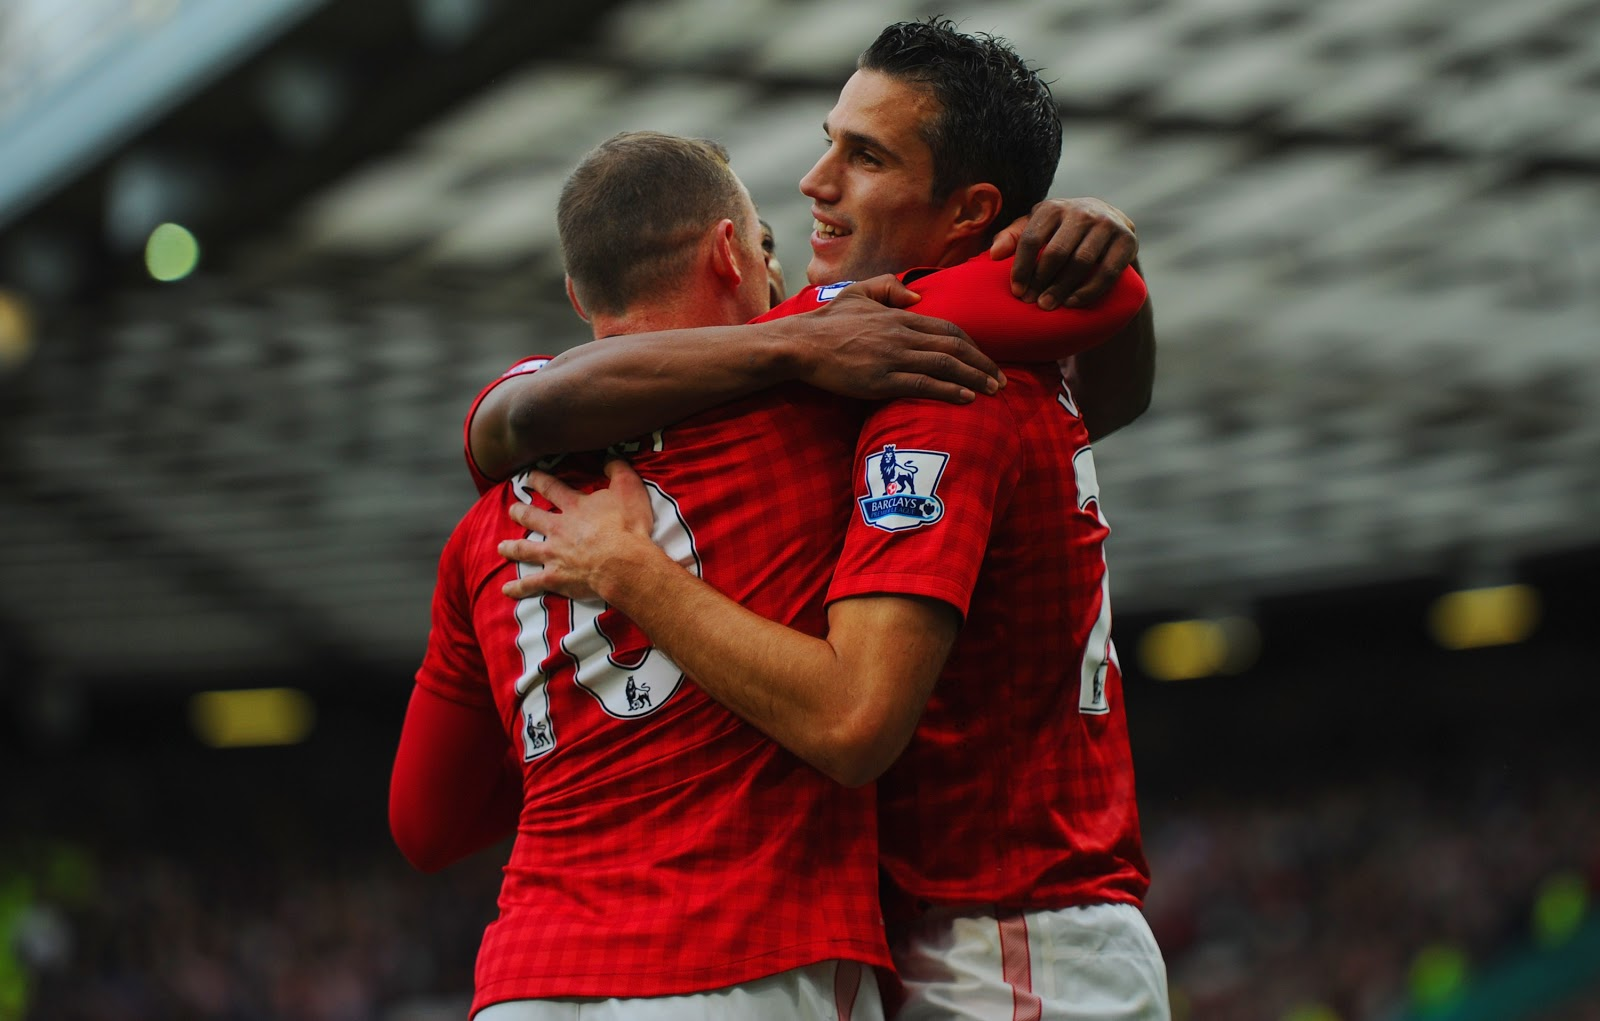 Robin van Persie Wallpapers and Biography | Van Perfect